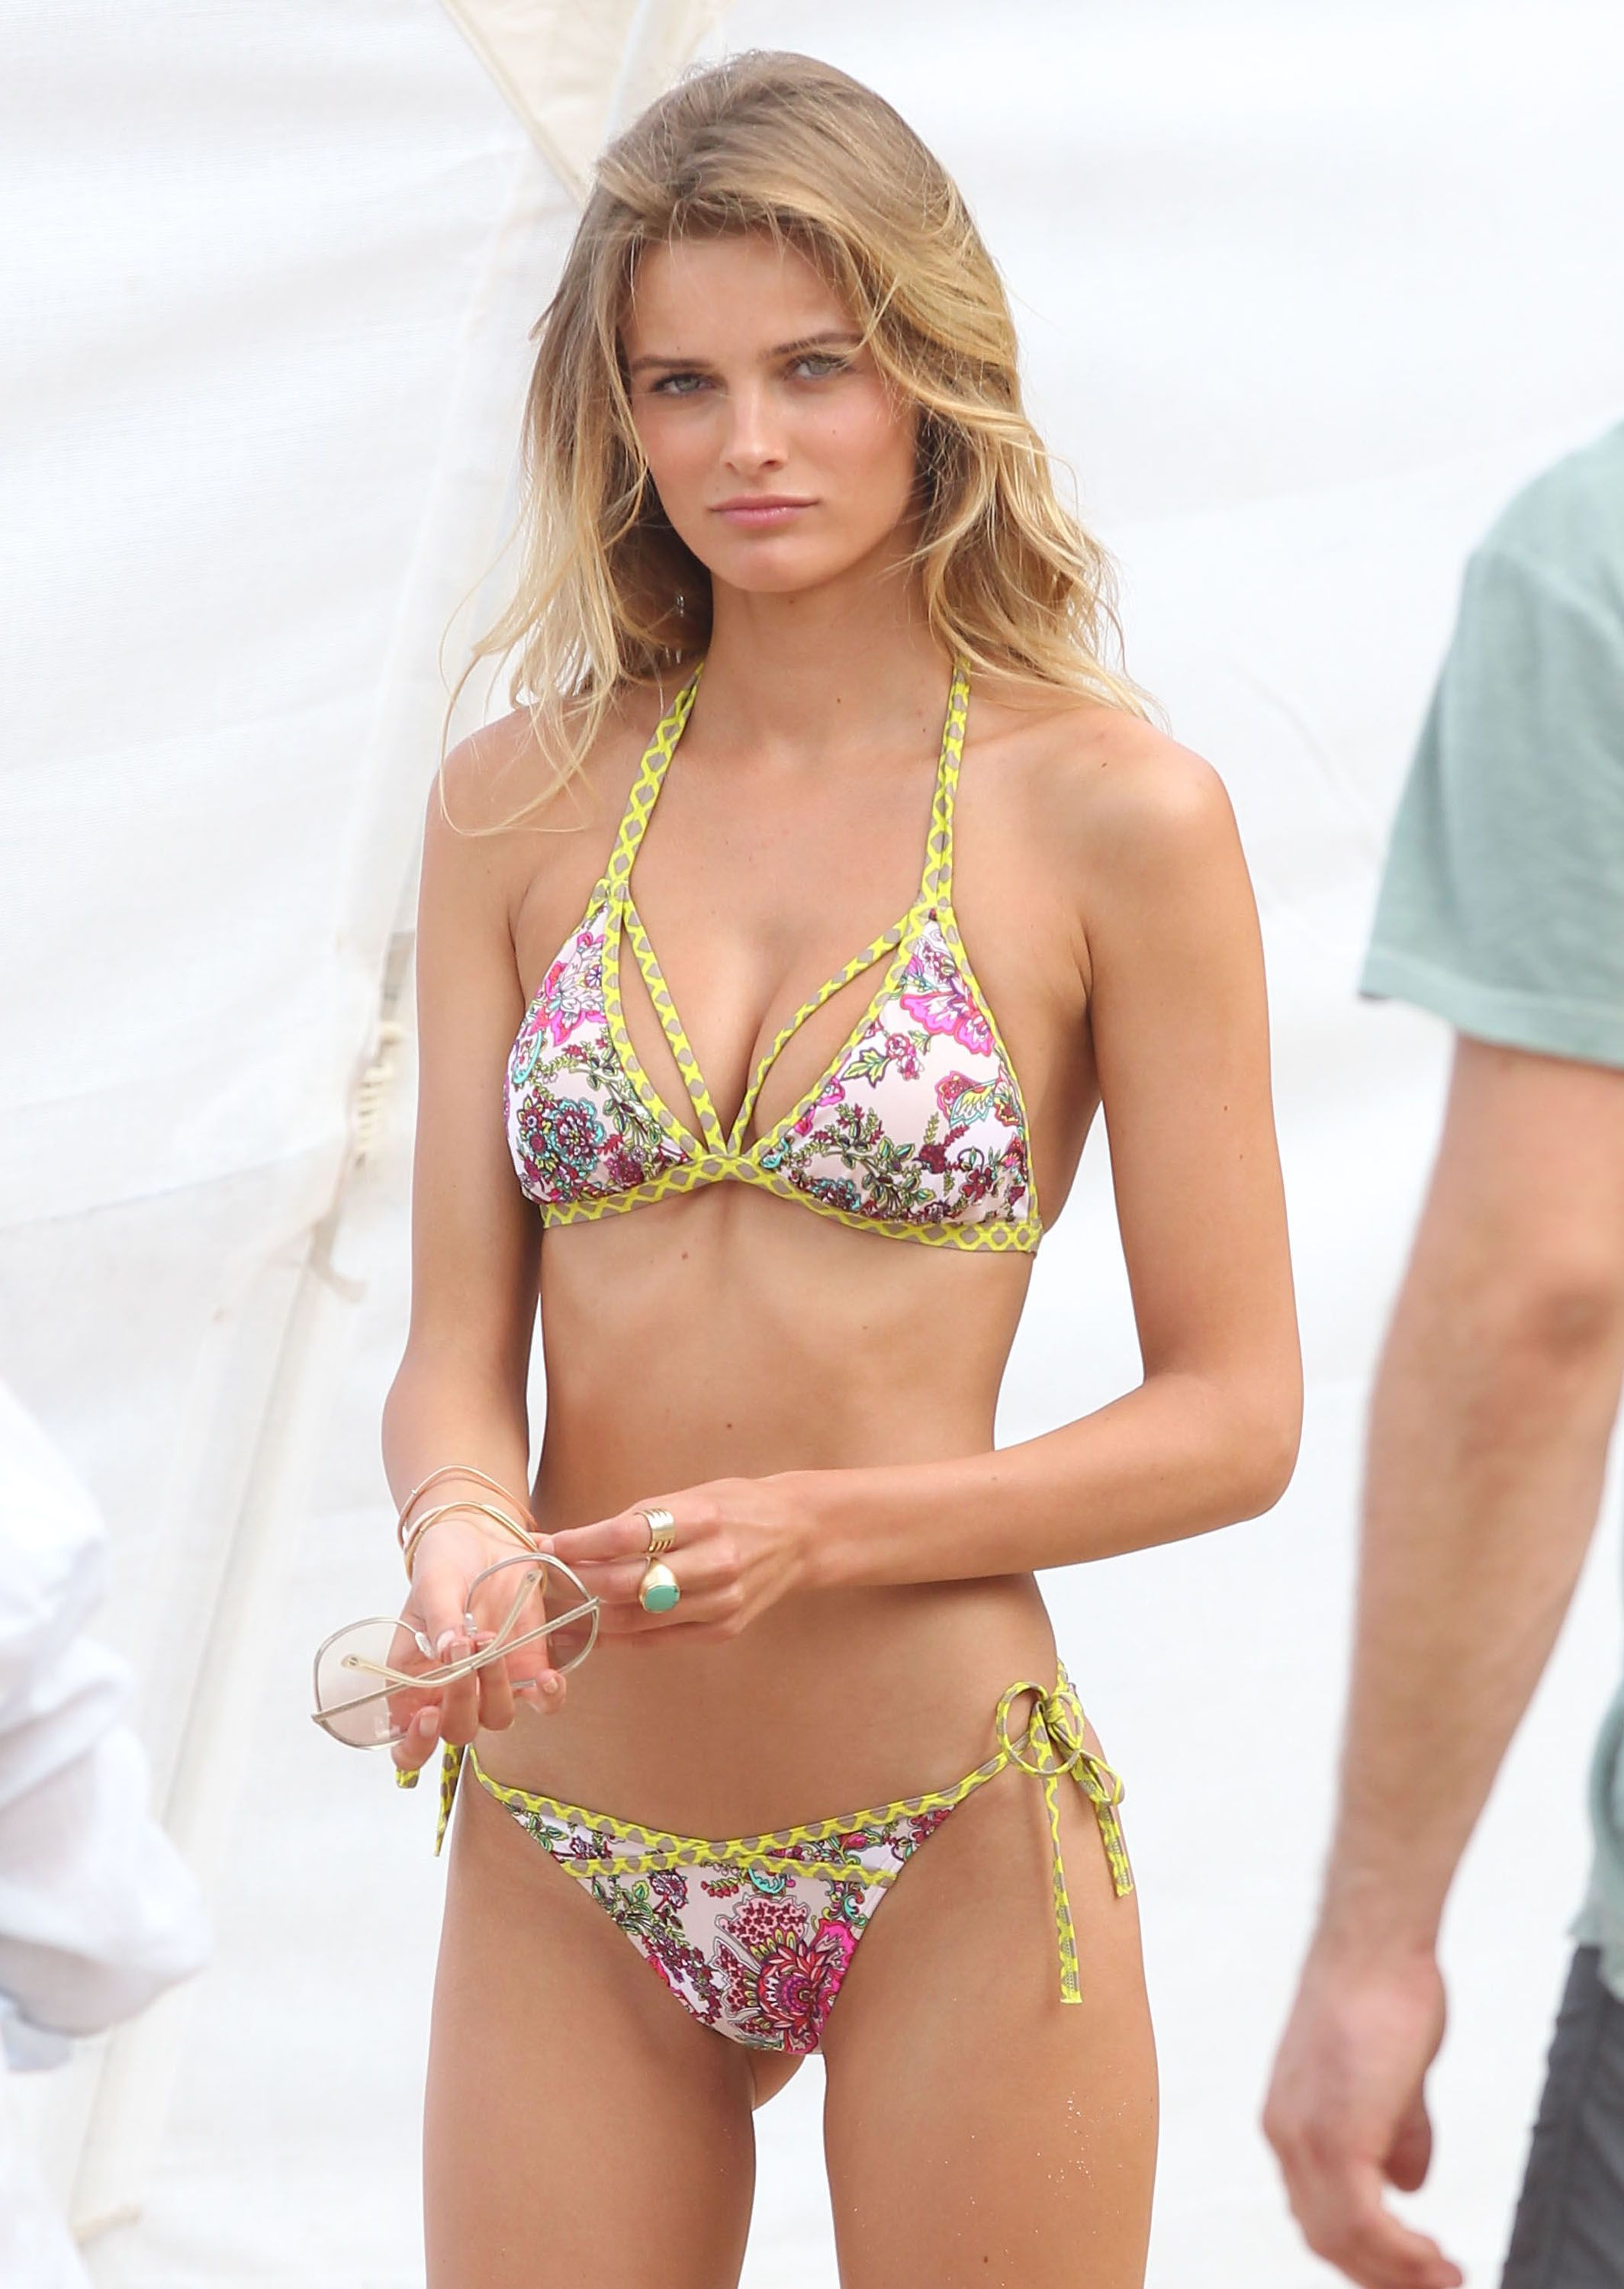 Edita Vilkeviciute Doing A Victoria's Secret Photo Shoot